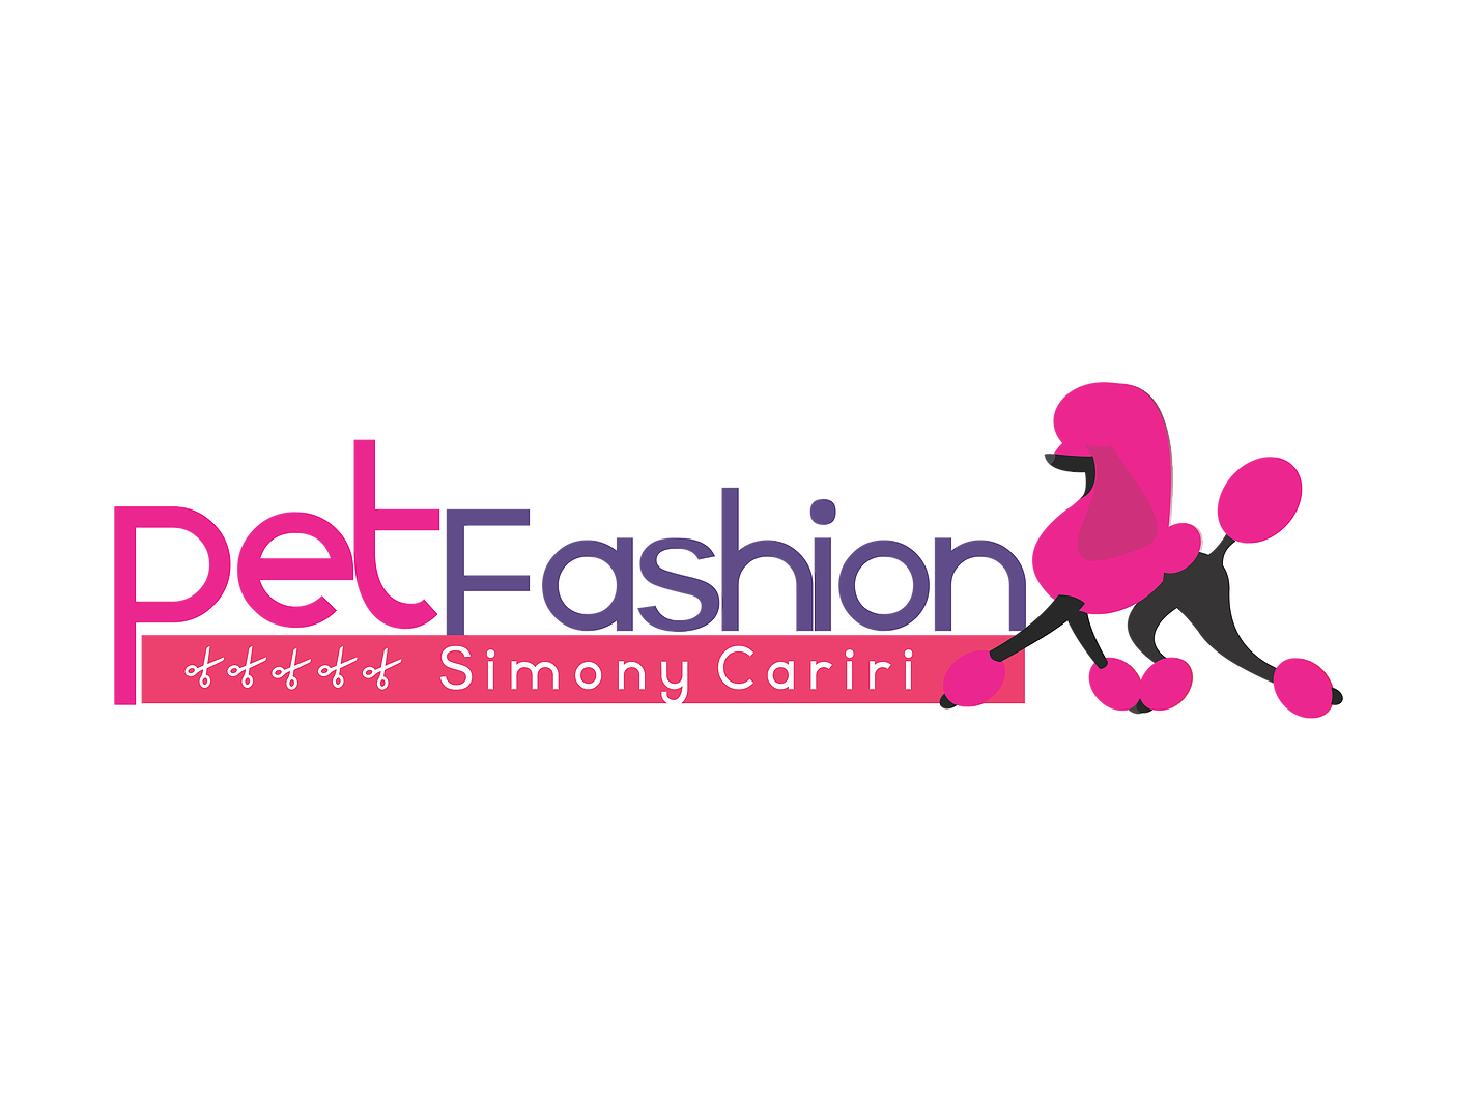 Pet Fashion Simony Cariri